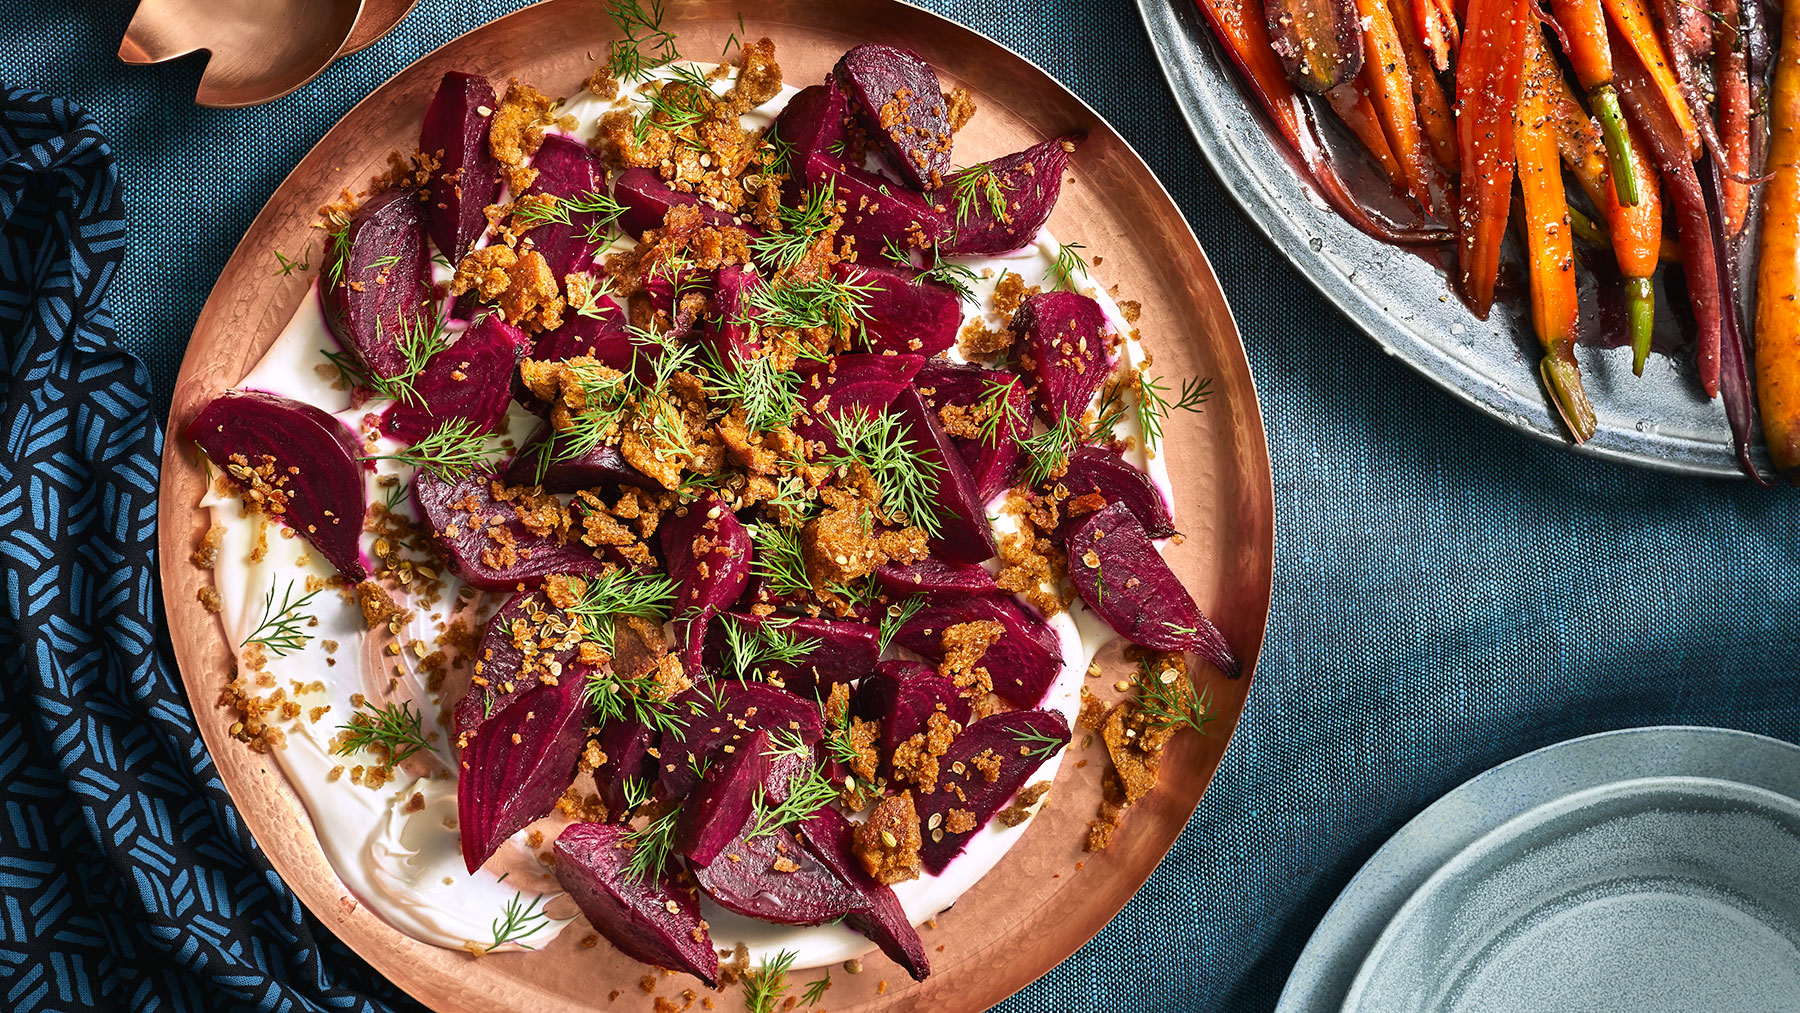 Gin-Infused Beets With Crème Fraîche and Rye Bread Crumbs